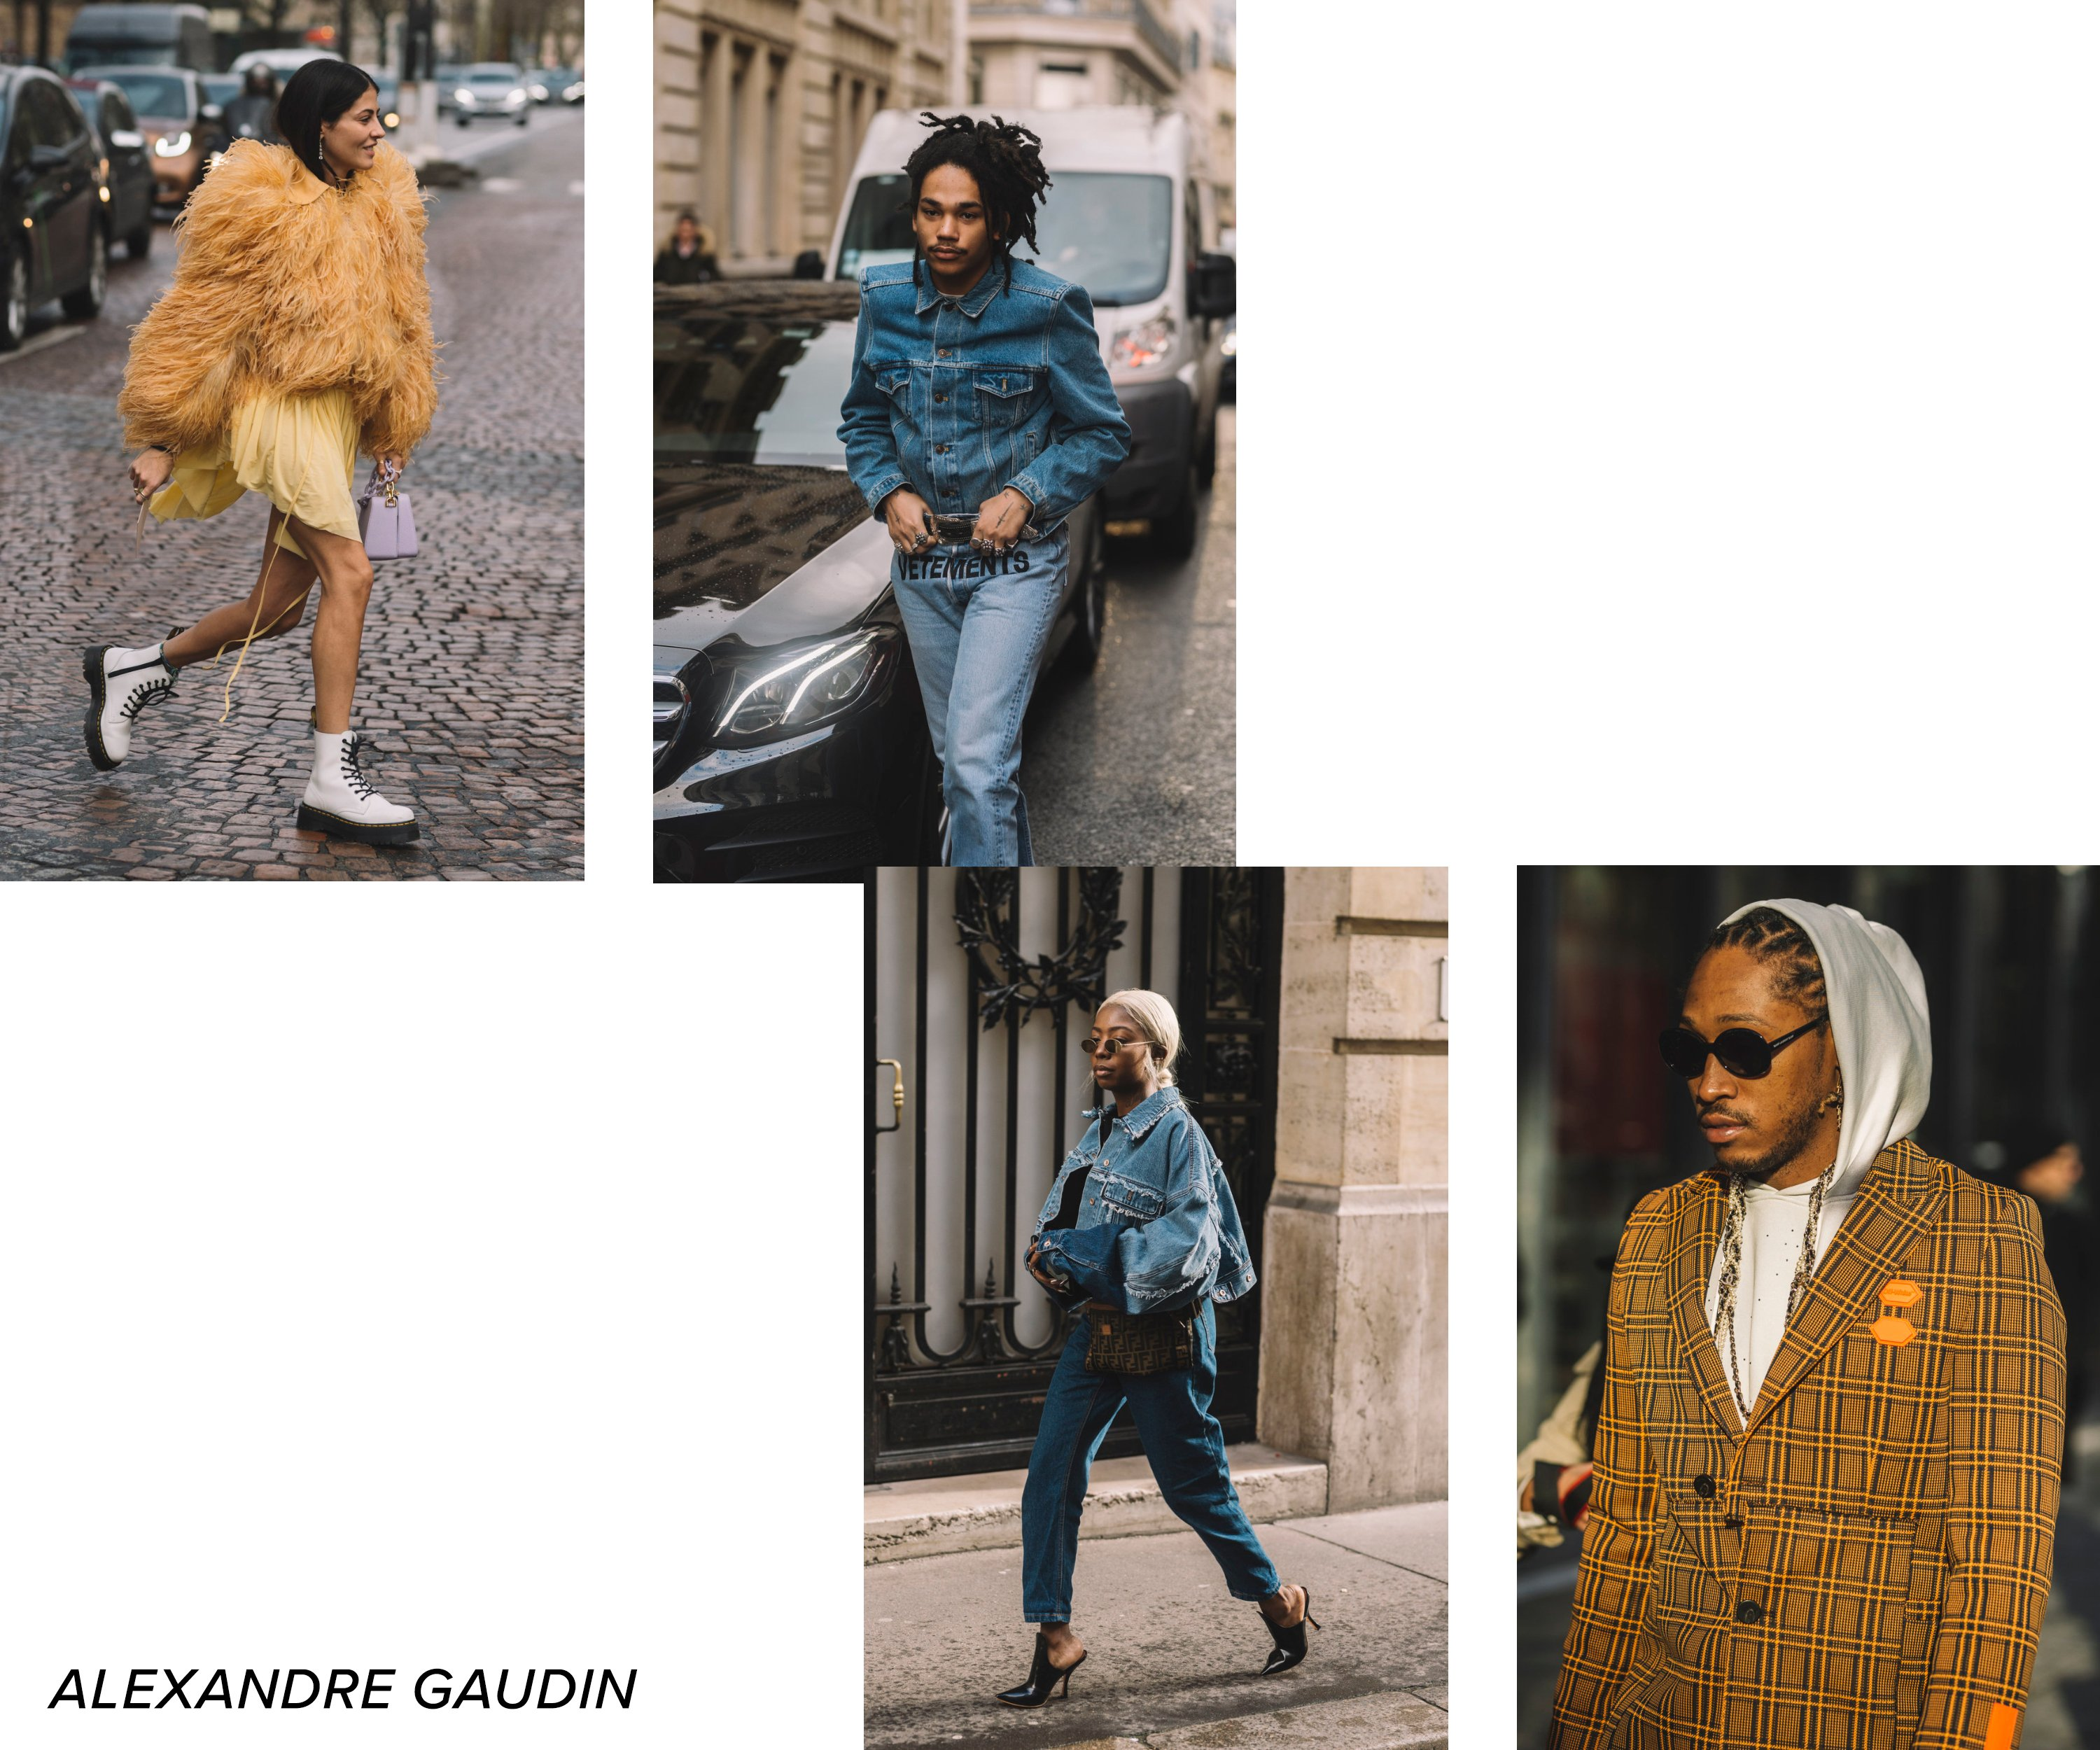 Alexandre Gaudin - LubakiLubaki - 19 Photographers Taking Photos of Your Favorite Models and Designers - FilterGrade